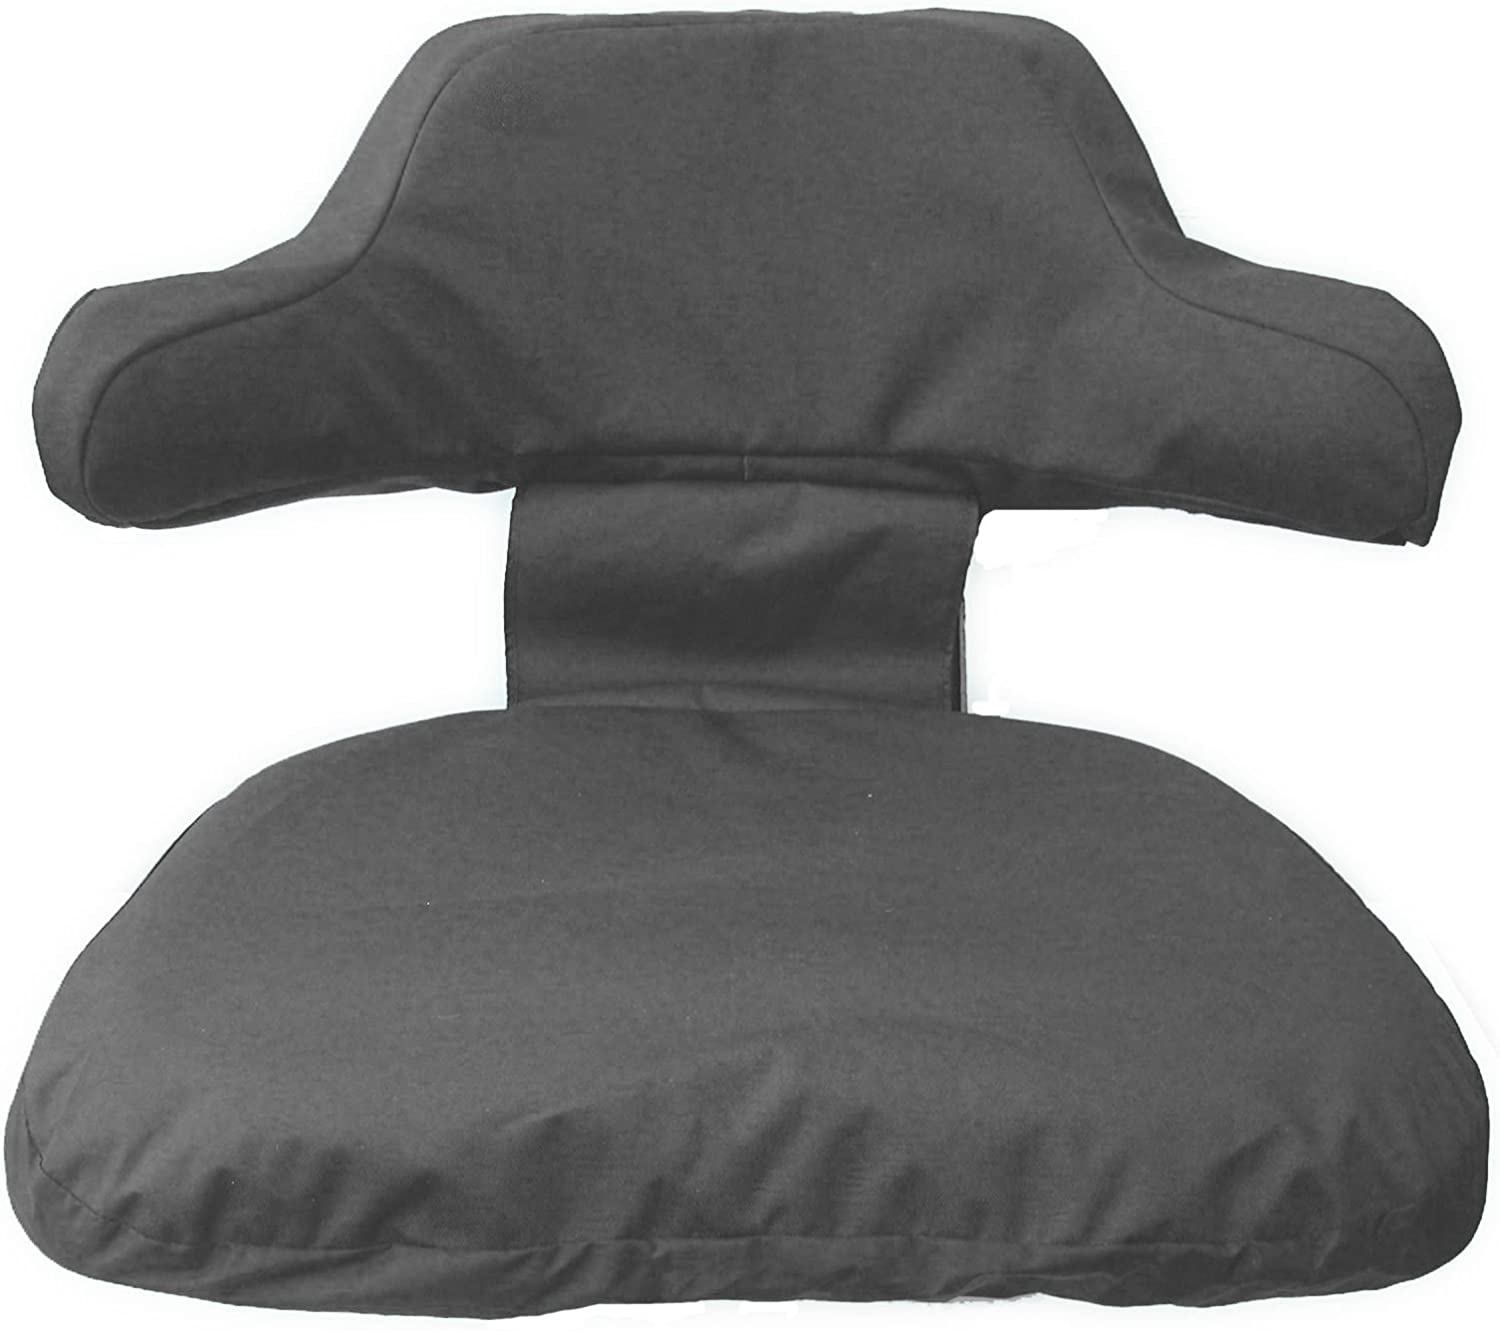 Town and Country Covers Tractor// Plant Large Seat Cover Grey